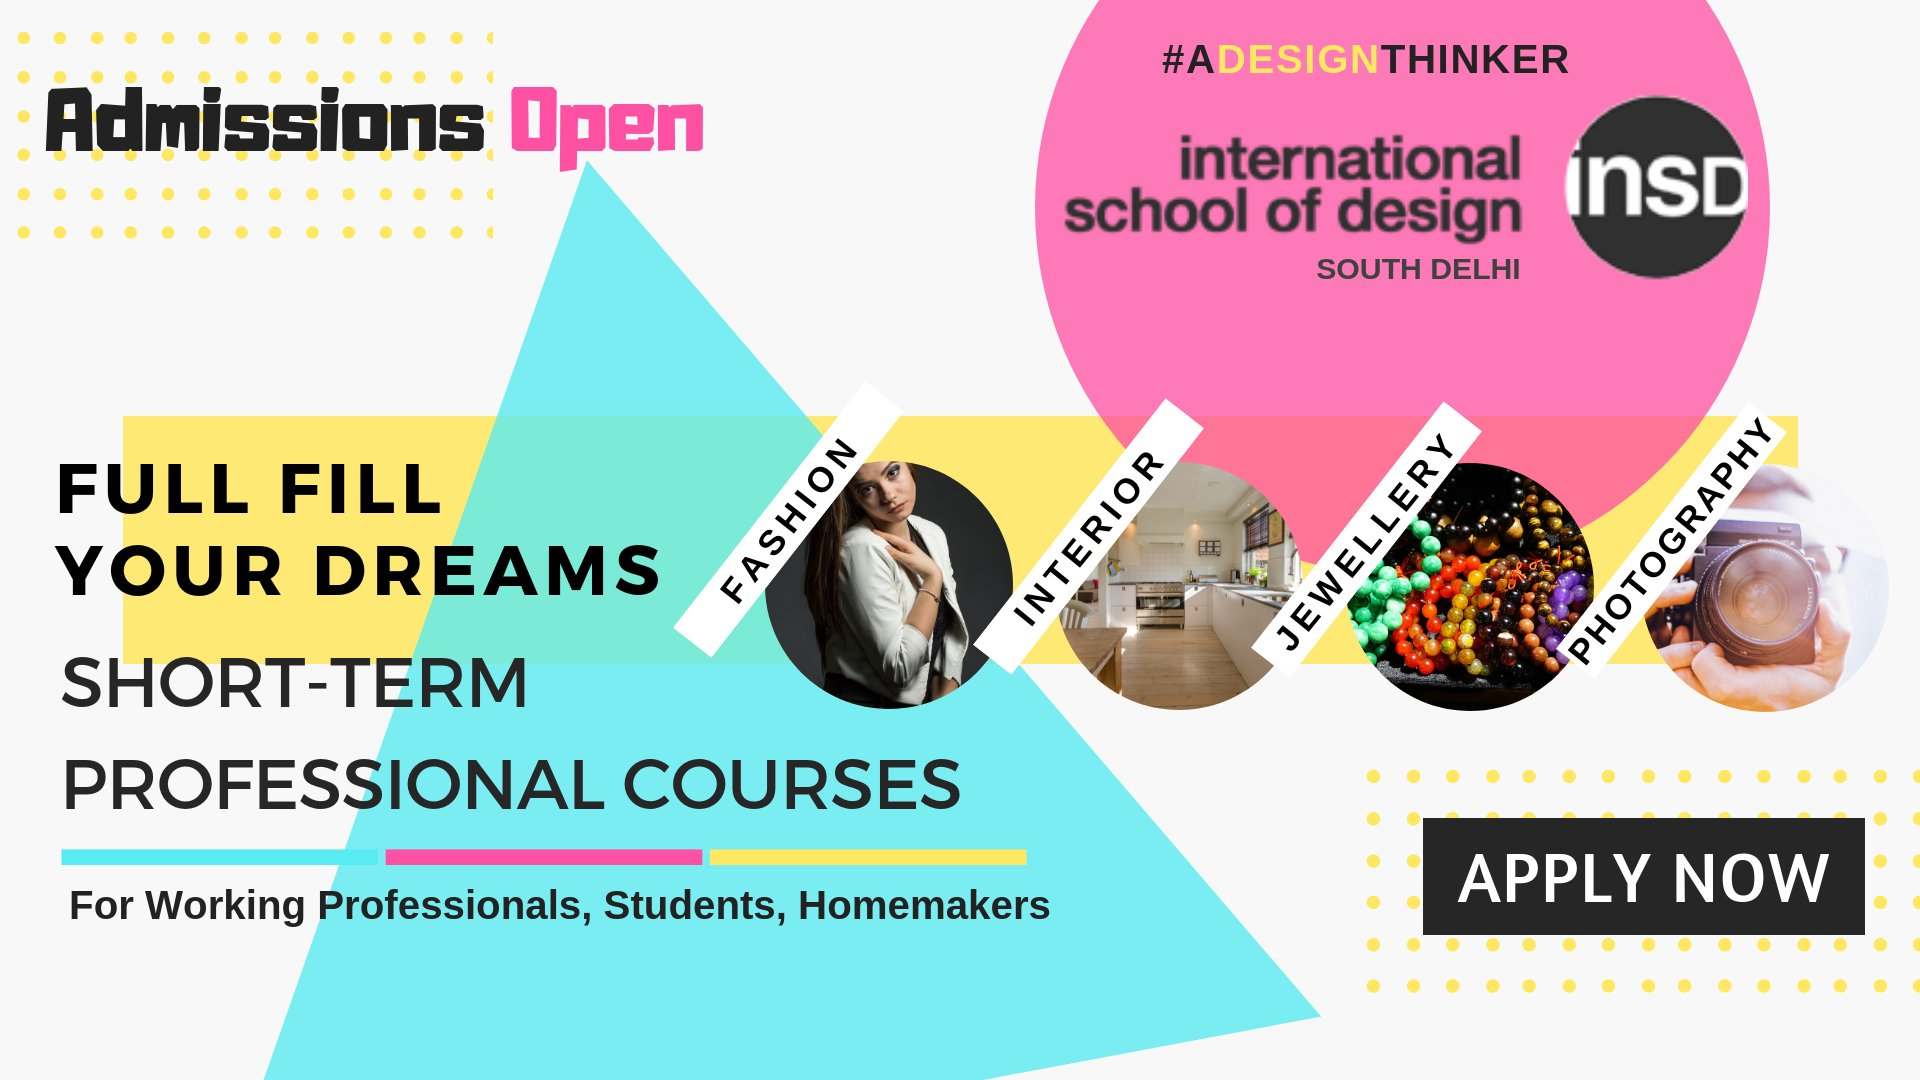 Insd South Delhi On Twitter We Welcome You To Visit The Institute And To Find Out More Information About Any Of Our Exciting Courses And Career Pathways For More Info Https T Co Ip6ik2hurc Call